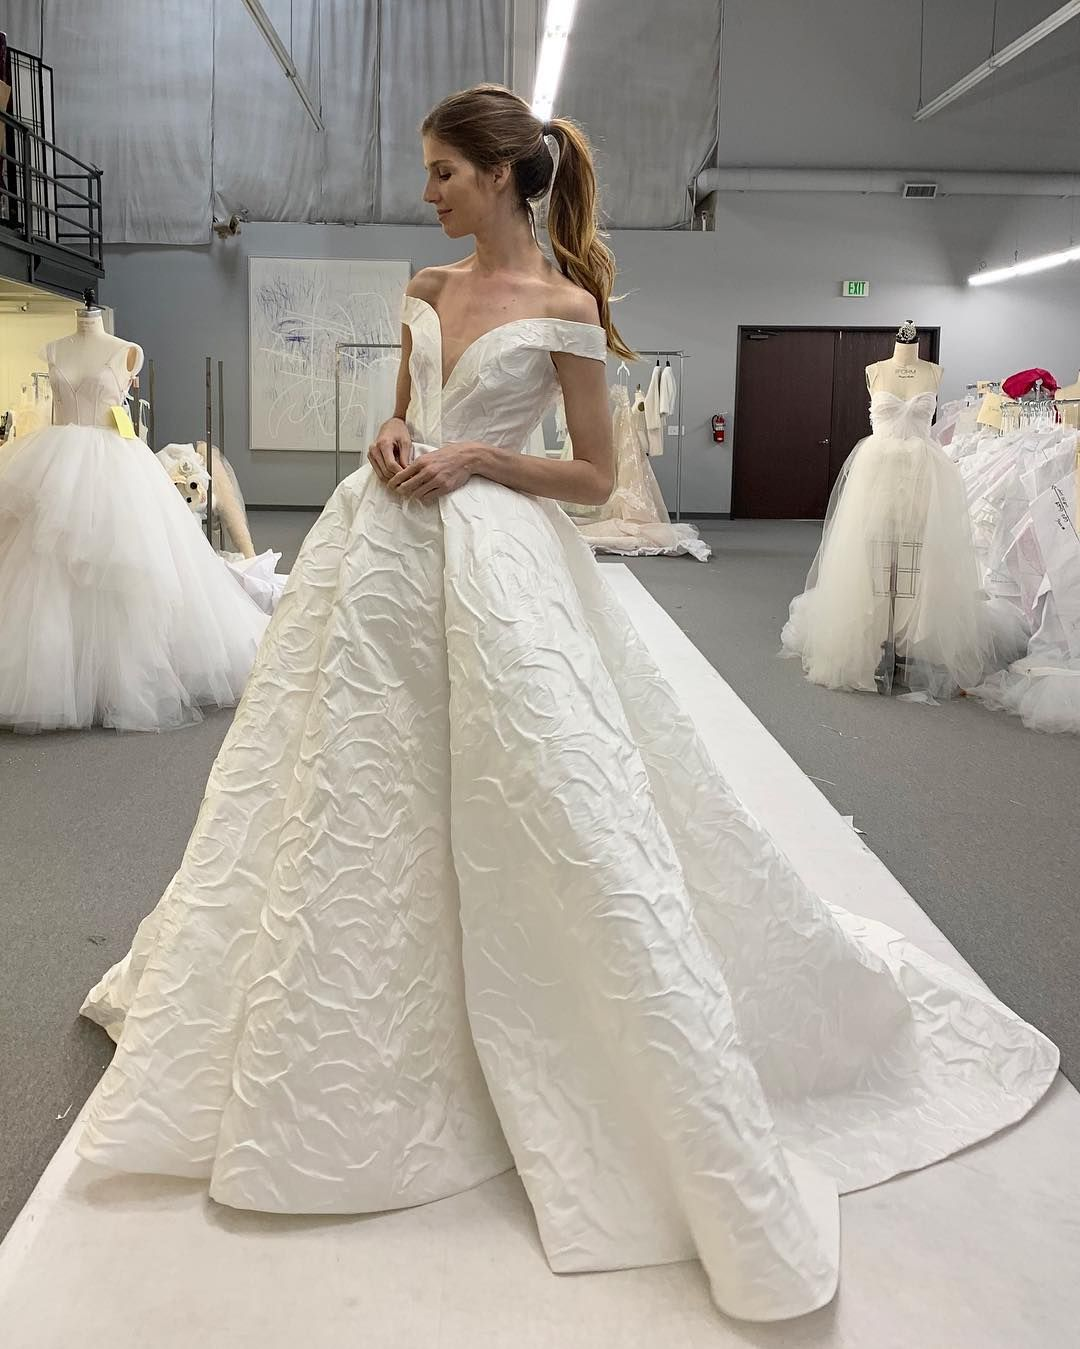 Monique Lhuillier On Instagram Today S Fittings I Think We Have A Winner Xm Moniquel Wedding Dresses Wedding Dresses For Sale Beautiful Wedding Dresses